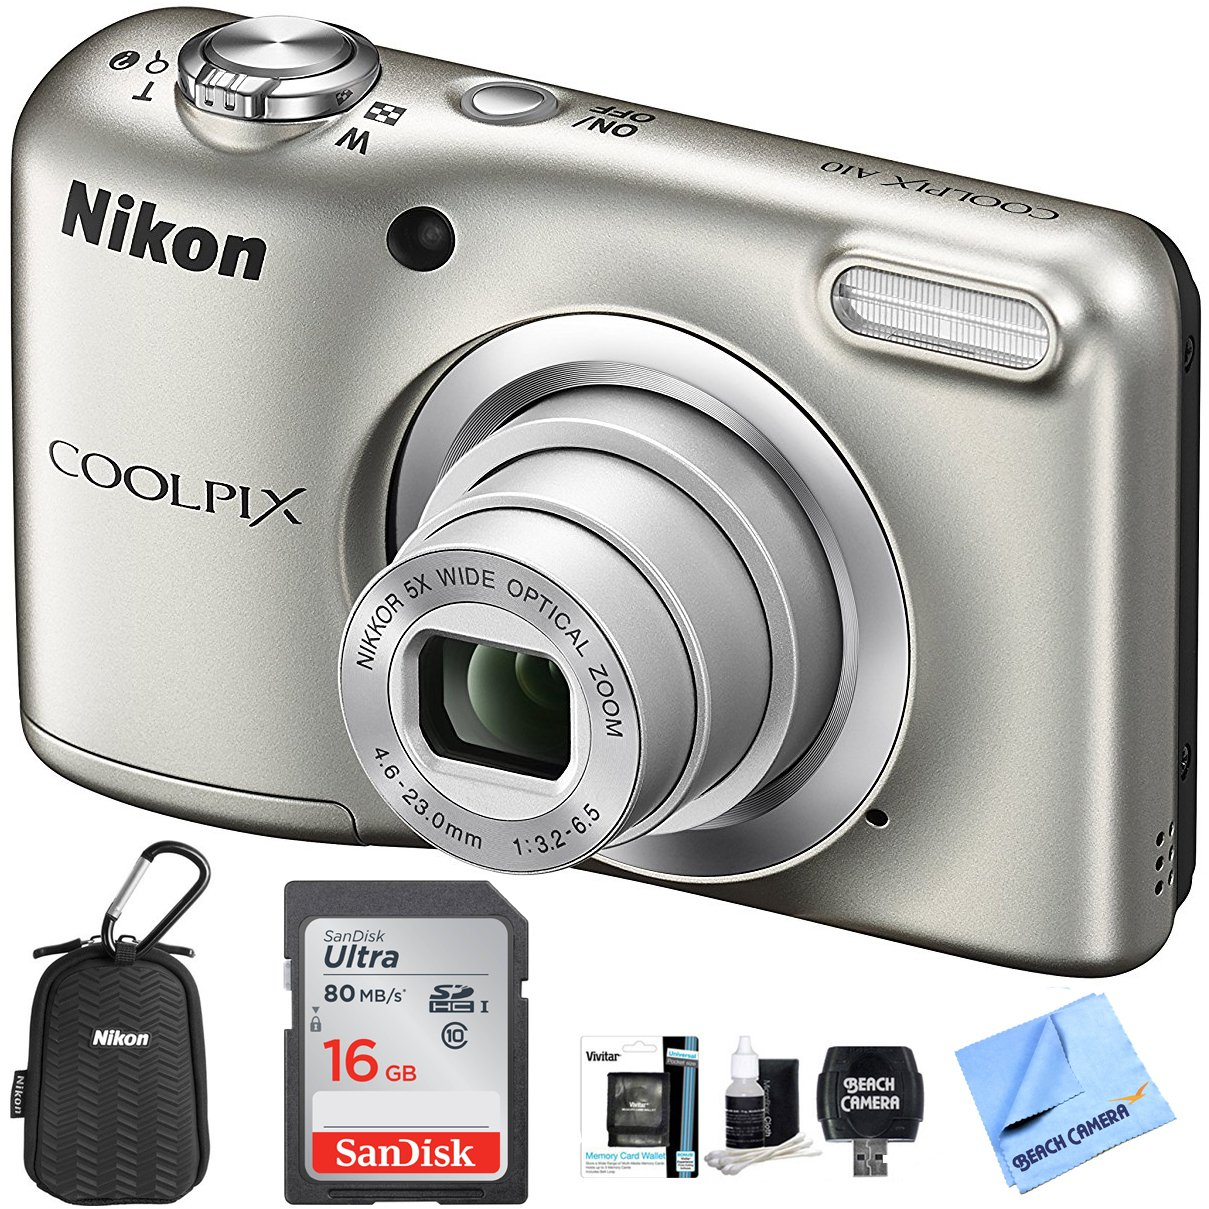 Nikon COOLPIX A10 Digital Camera 16.1MP 5x Zoom NIKKOR Glass Lens - Silver with 16GB Memory Card All Weather Sport Case Bundle (Certified Refurbished) by Nikon